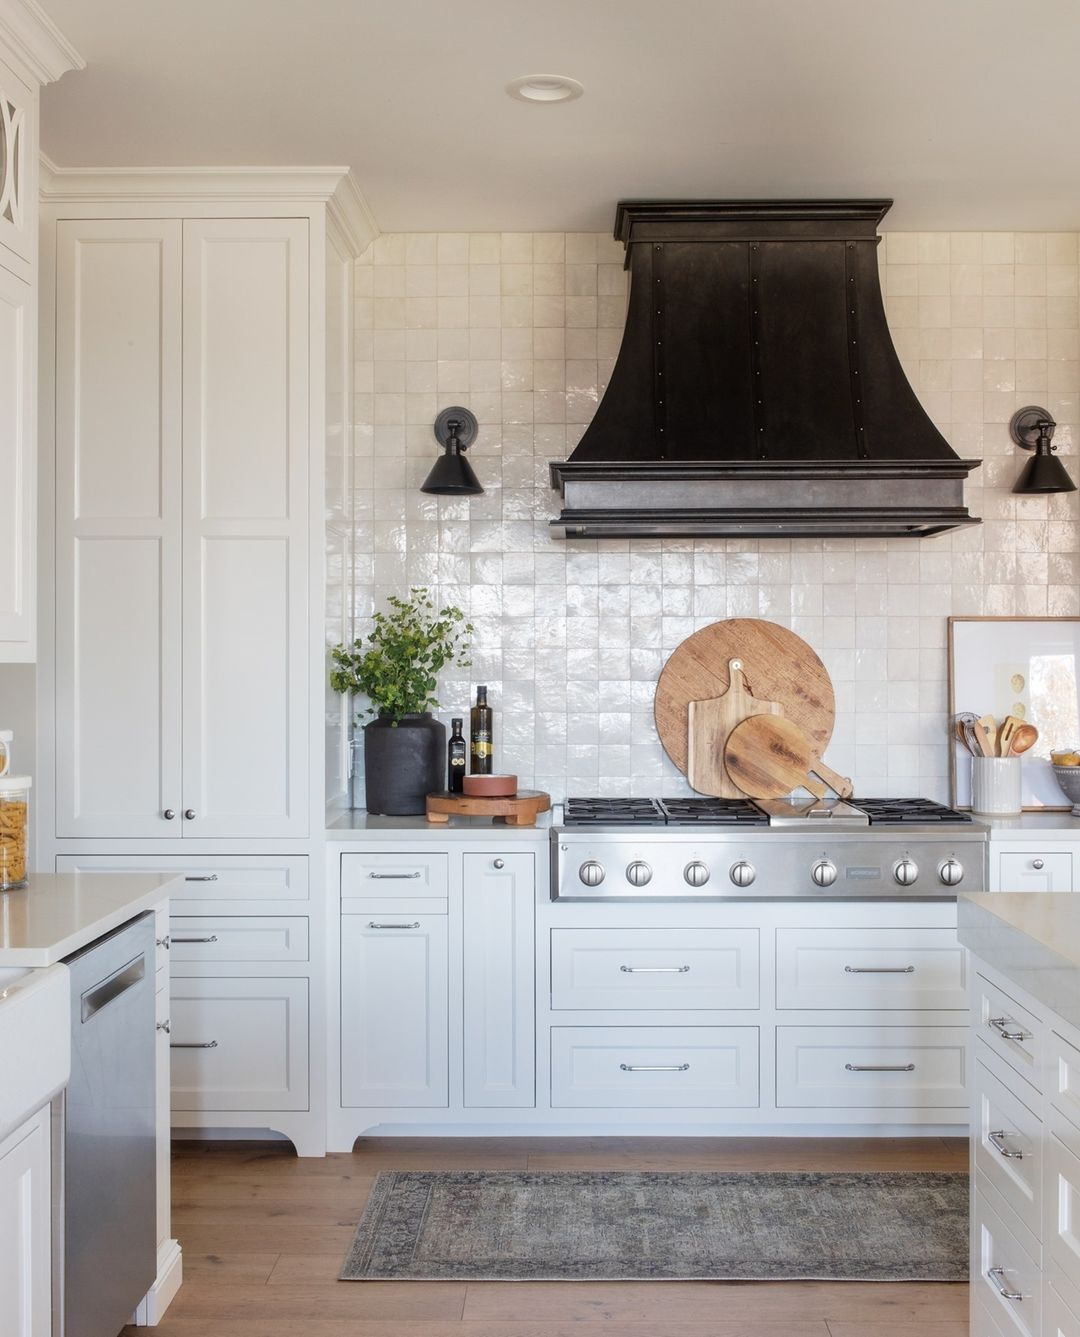 Scout Nimble On Instagram Our Favorite Finishing Touch In The Kitchen A Runner Lucky For You We Ha Kitchen Design Kitchen Post Painting Kitchen Cabinets